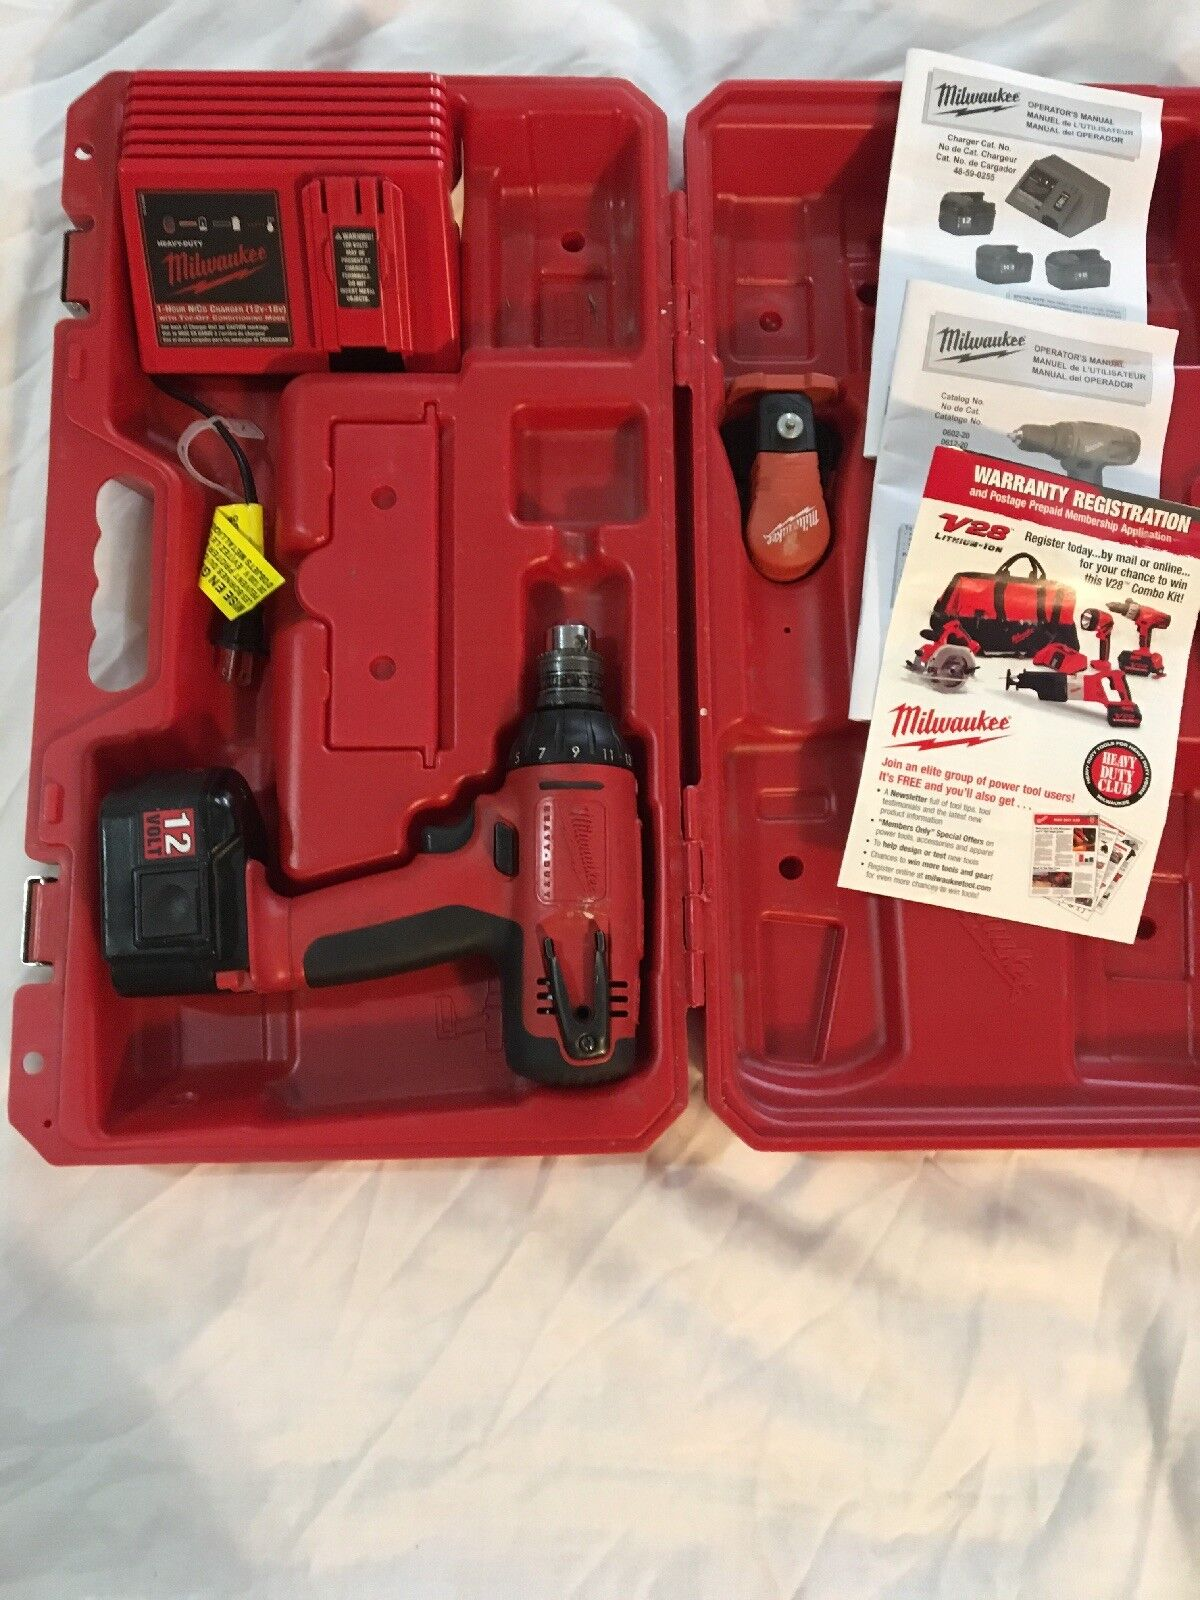 Milwaukee 12V 3 8  Drill Driver w  Battery & Charger + Carrying Case + Manuals